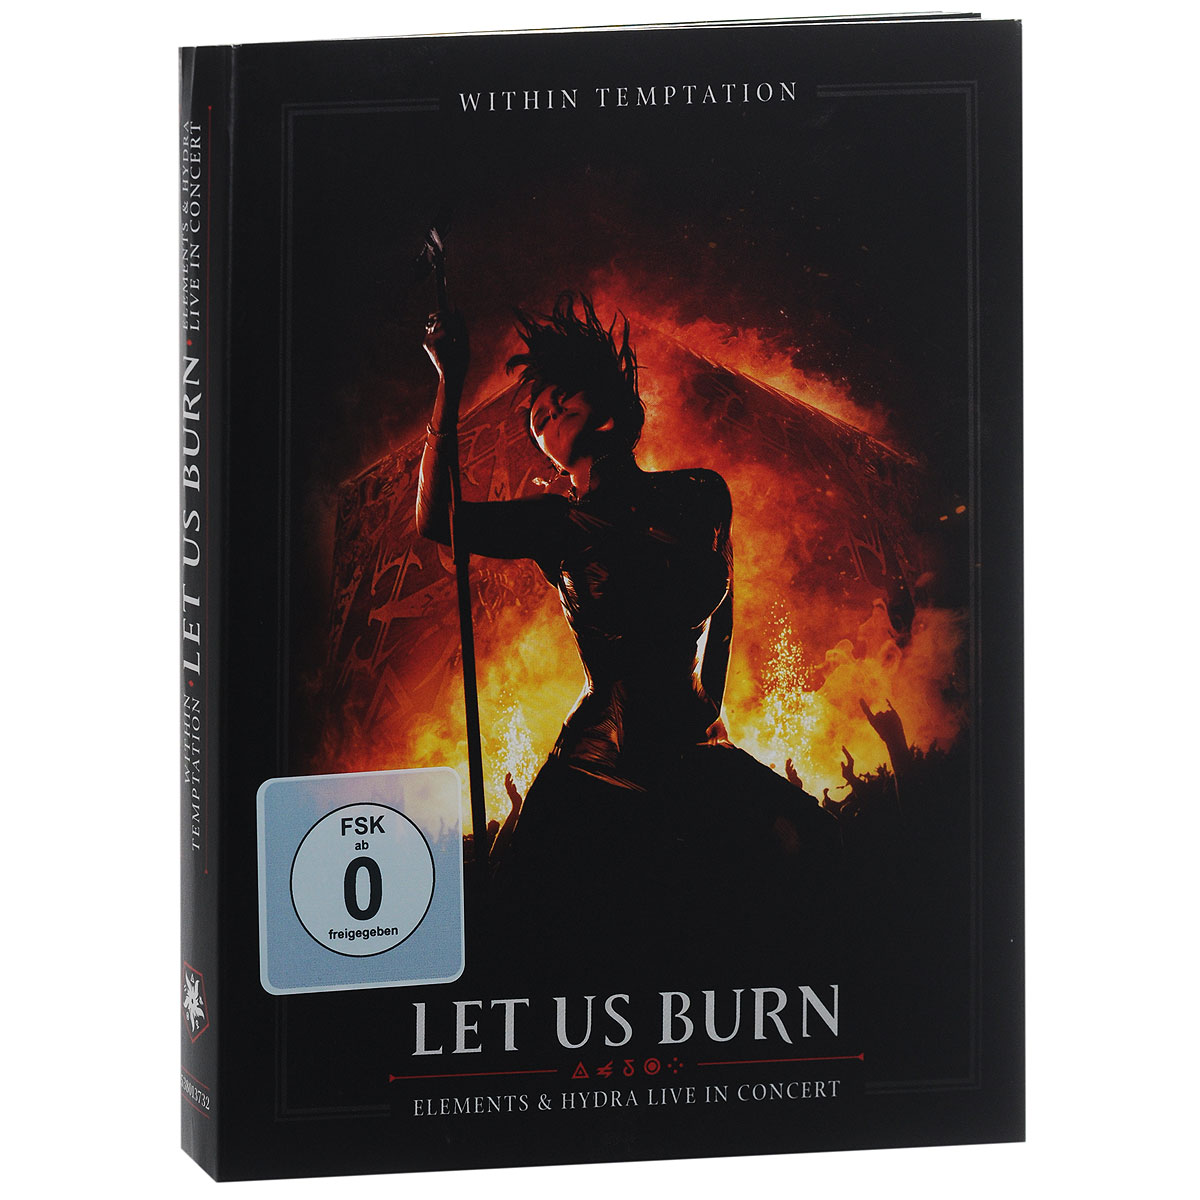 Within Temptation Within Temptation. Let Us Burn (Elements & Hydra Live In Concert) (2 CD + DVD) our hearts will burn us down